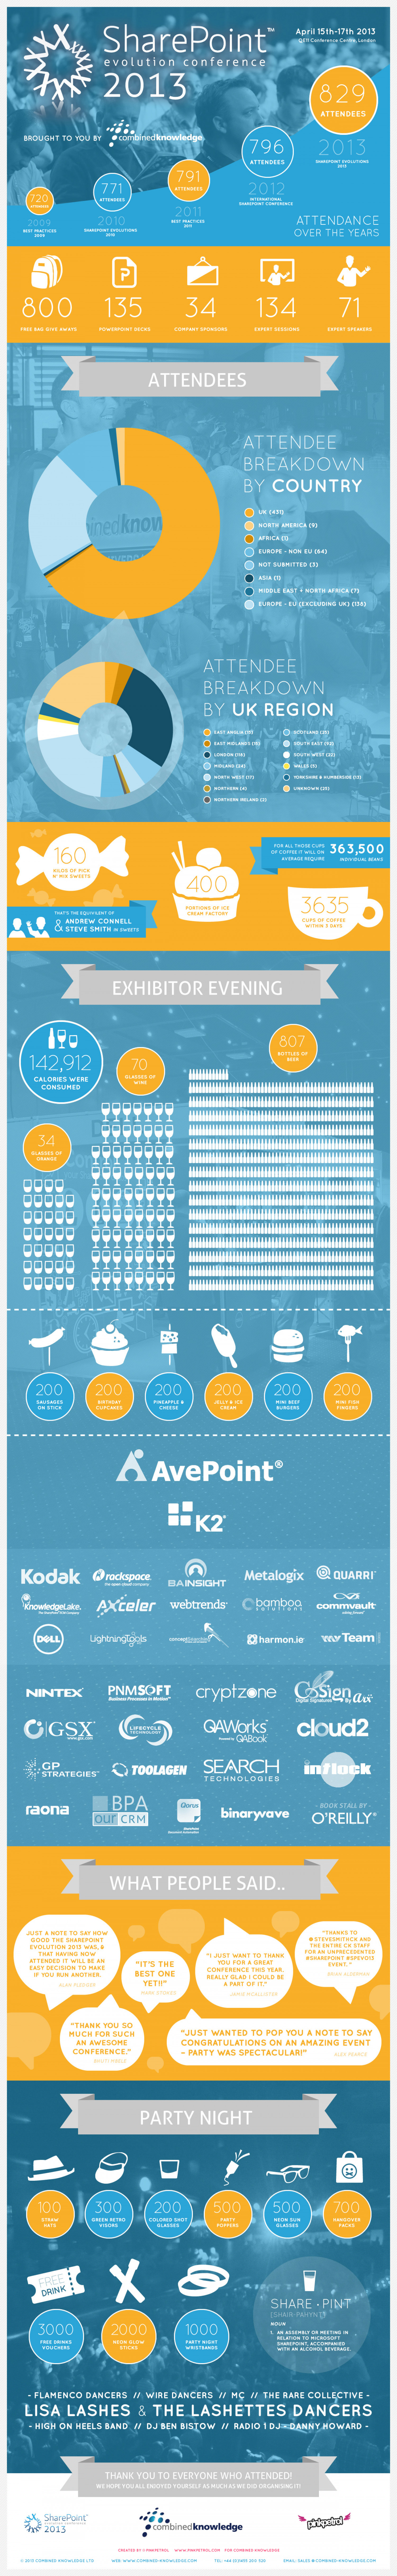 SharePoint Evolution Conference 2013 Infographic